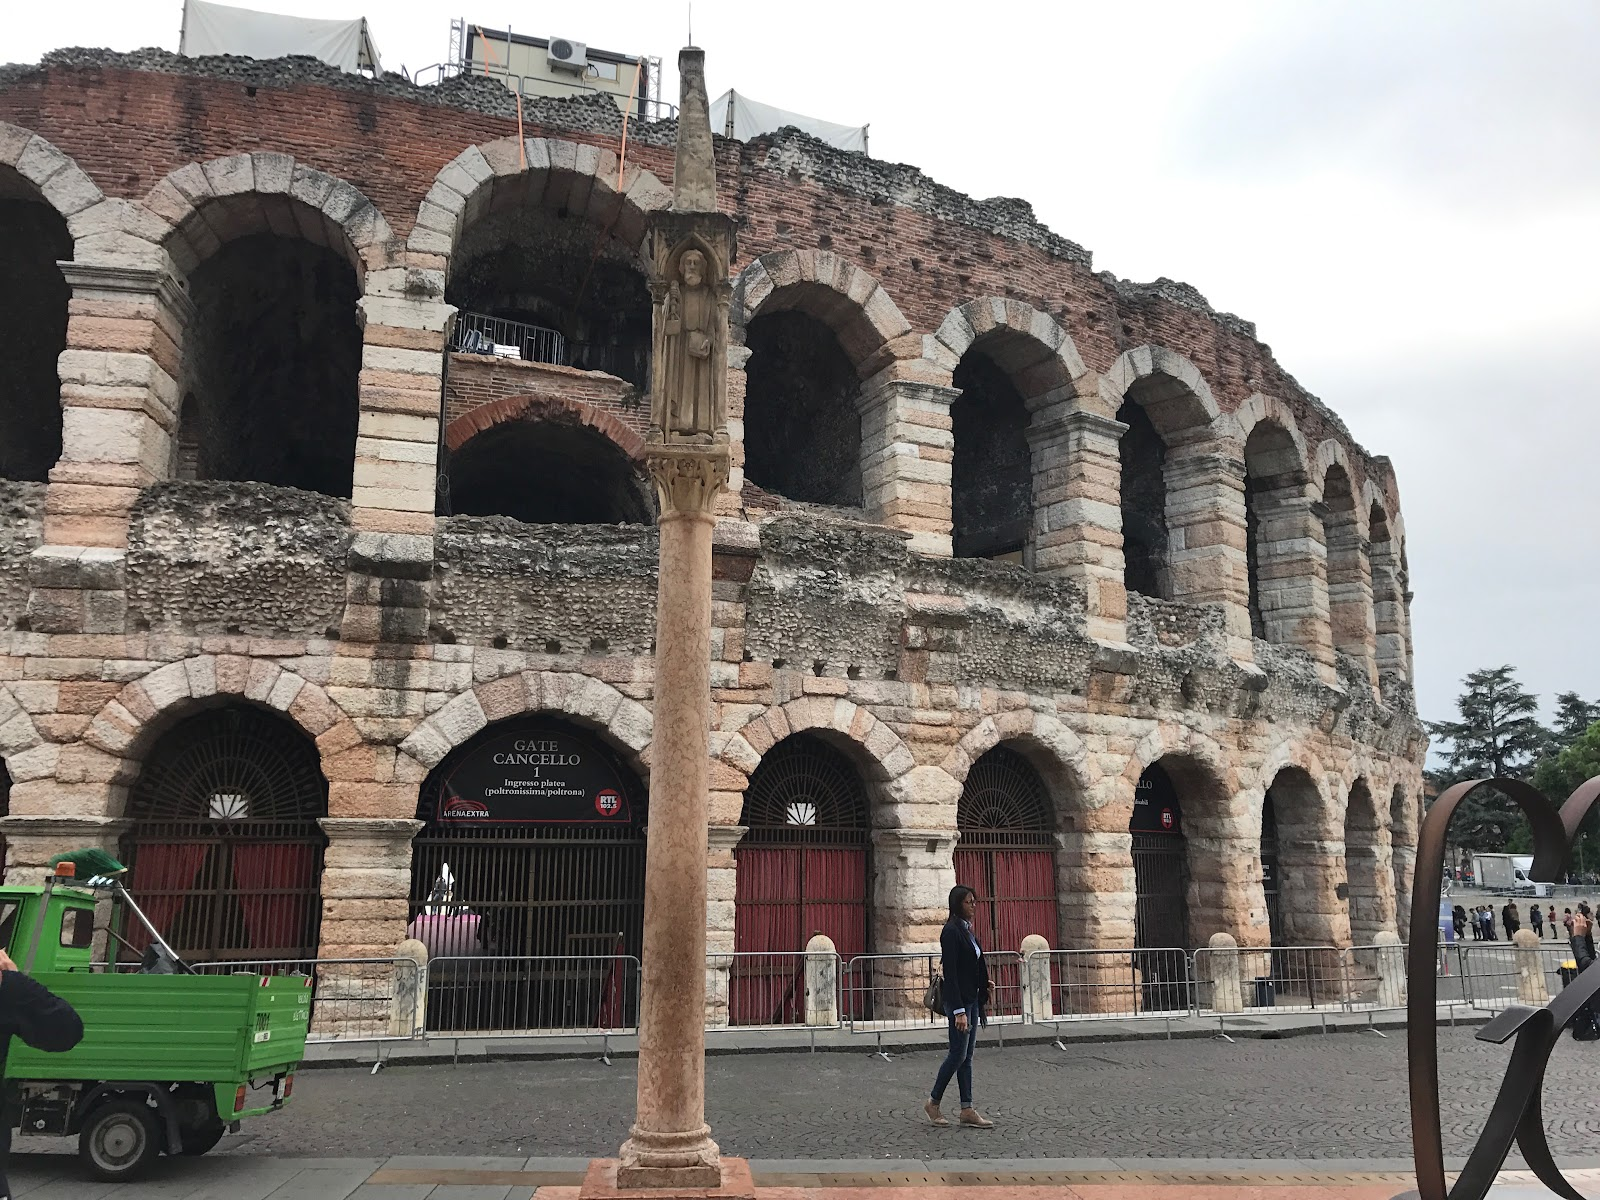 arena di verona, large colosseum is the main attraction in verona, italy. Seen on a cloudy day, tourists in the distance and old column in front of the arena. Be sure to see it on an Italy road trip